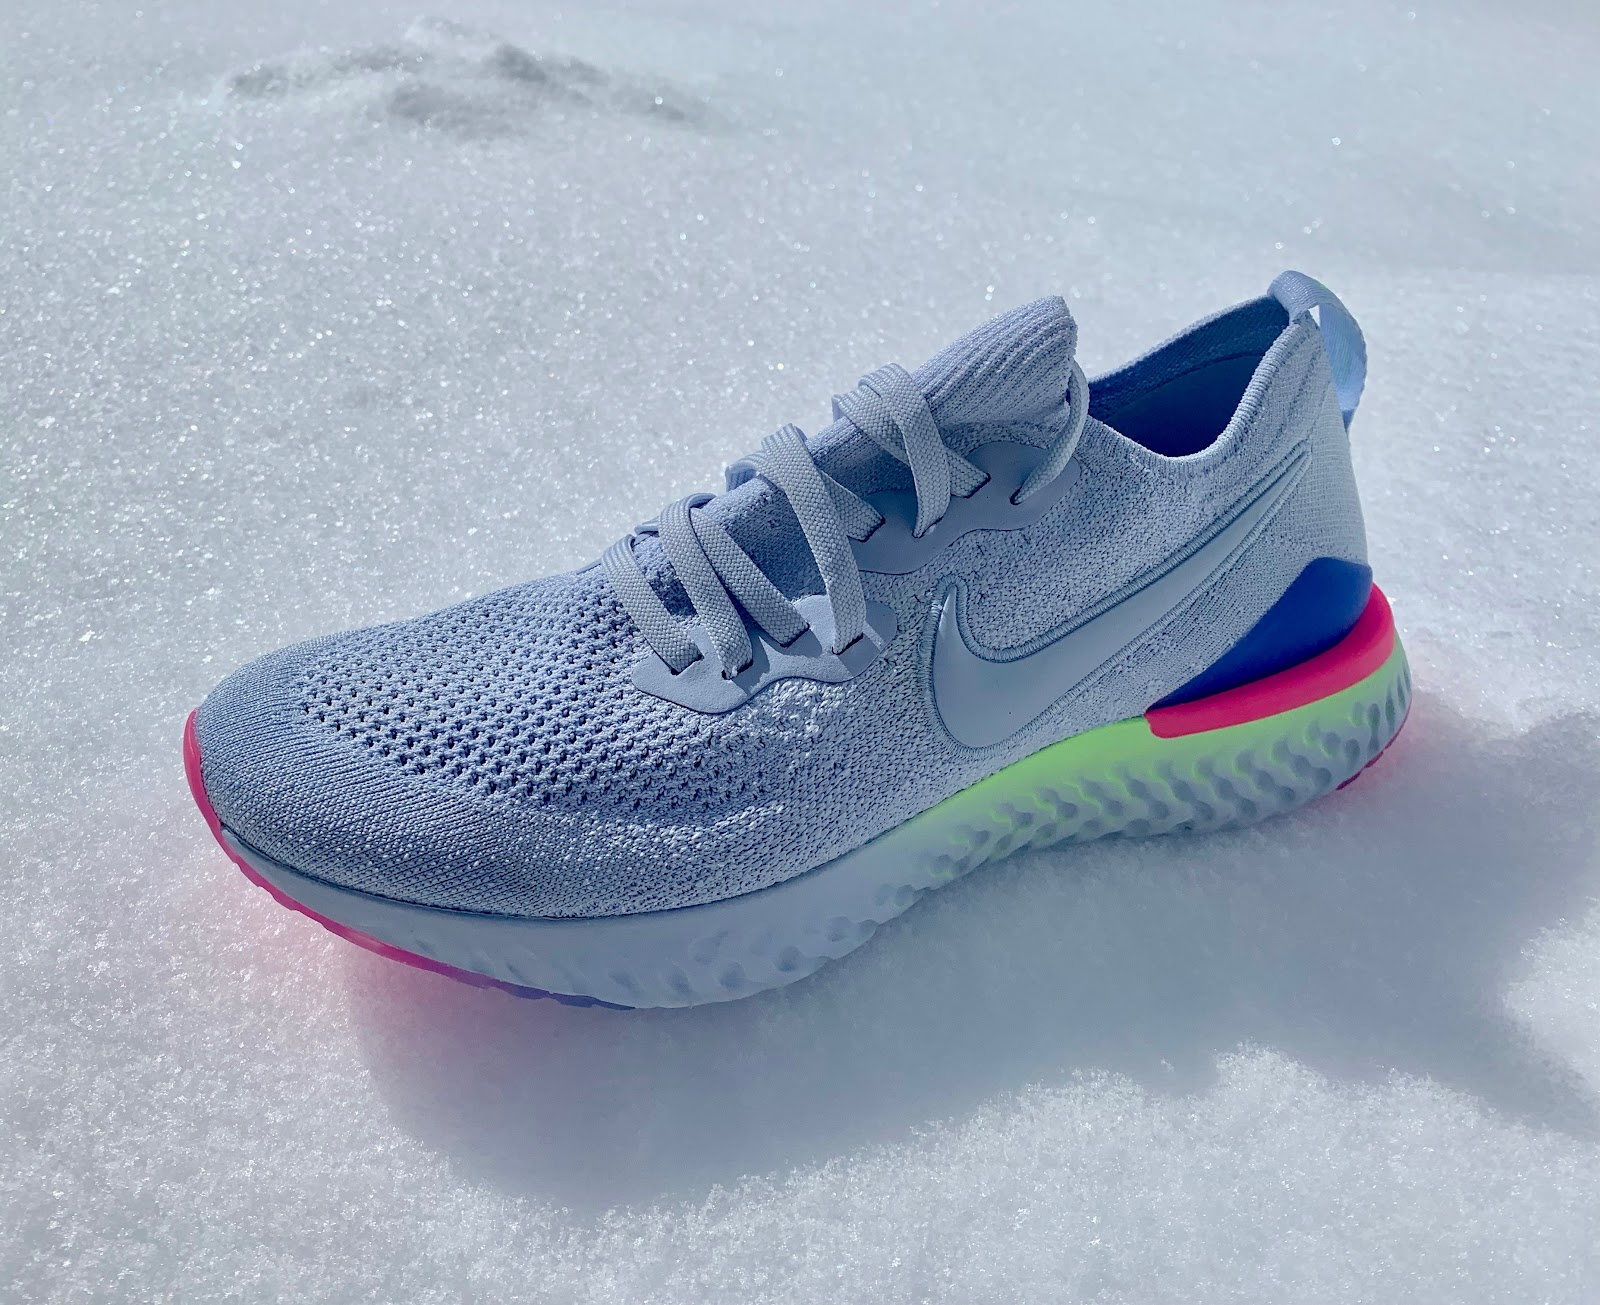 a915abd9a91 Road Trail Run  Nike Epic React Flyknit 2 Review  A Subtle yet ...